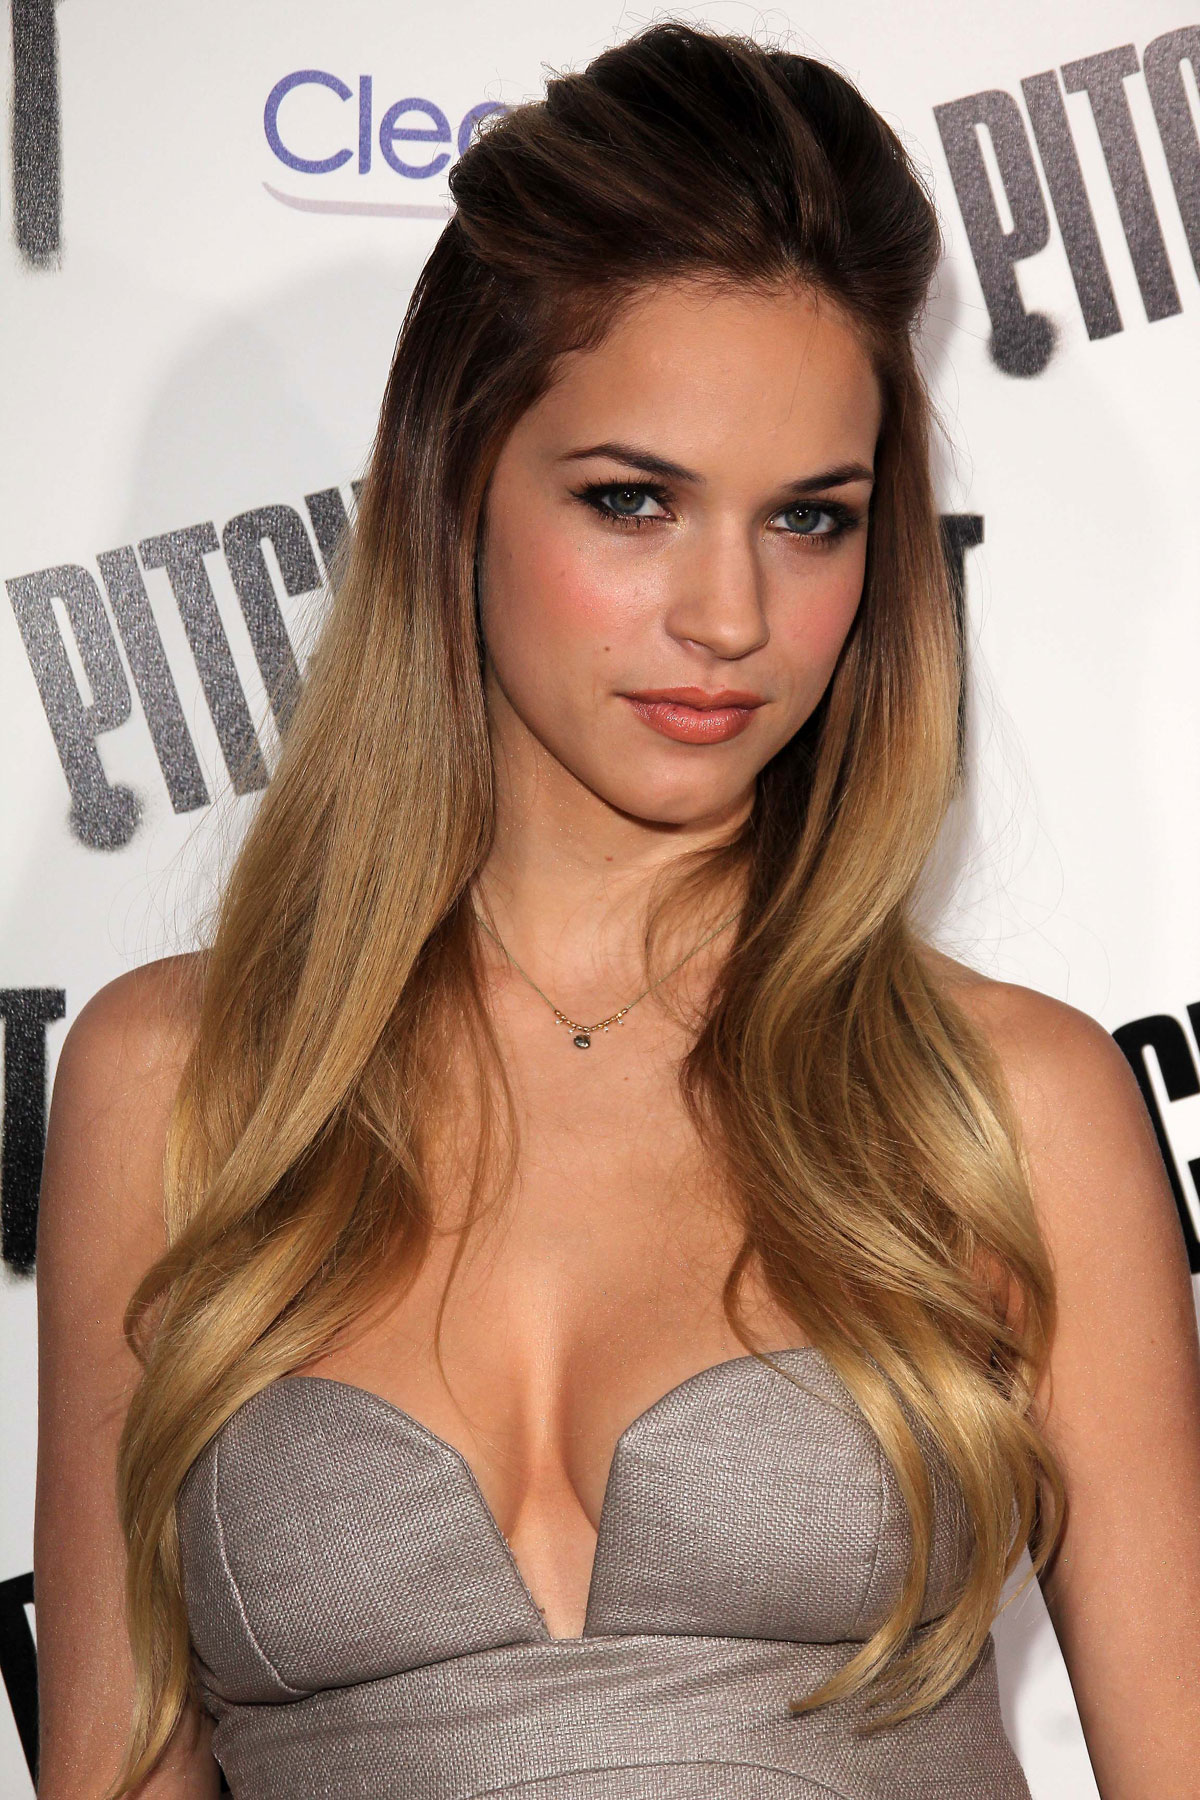 alexis knapp 2018 boyfriend tattoos smoking body measurements taddlr. Black Bedroom Furniture Sets. Home Design Ideas